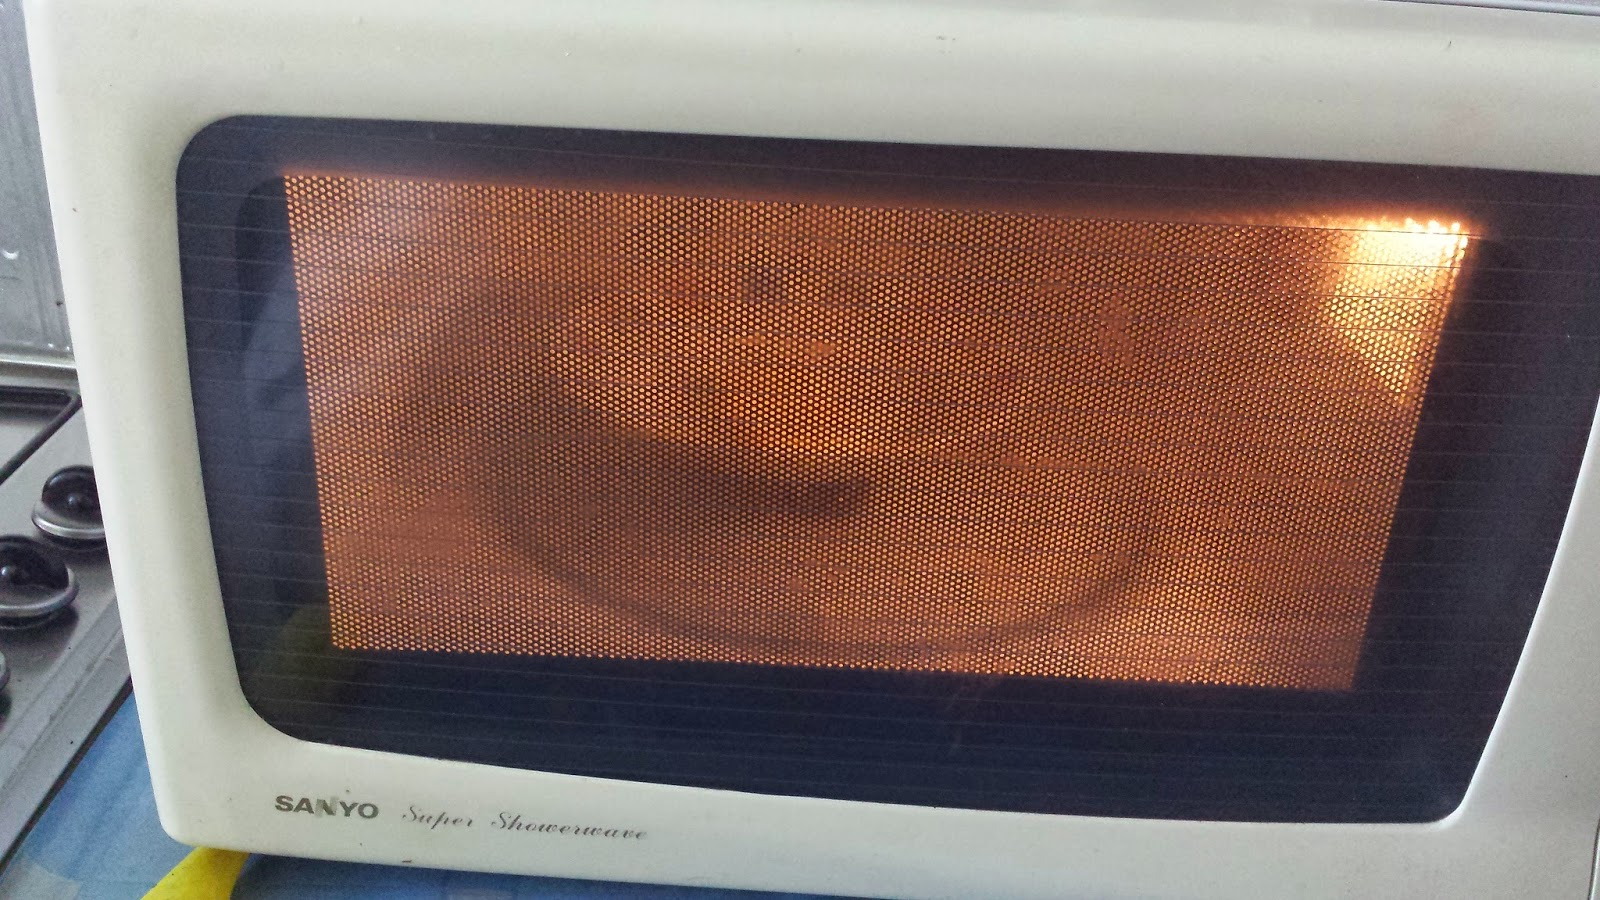 Beatrice S World Baking Kit Kat Pudding With A Microwave Oven